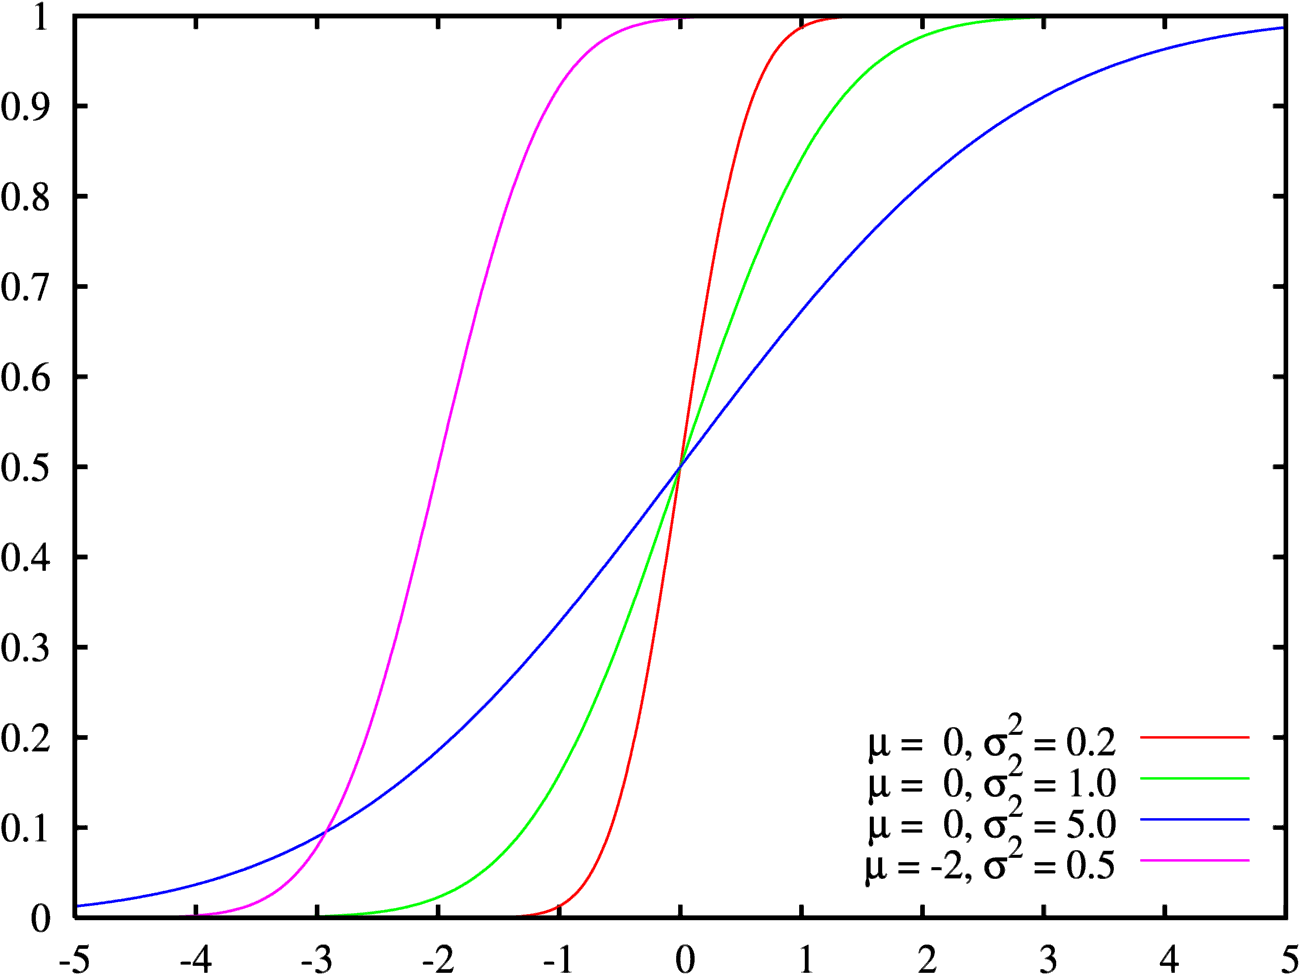 File:Normal distribution cdf.png - Wikimedia Commons